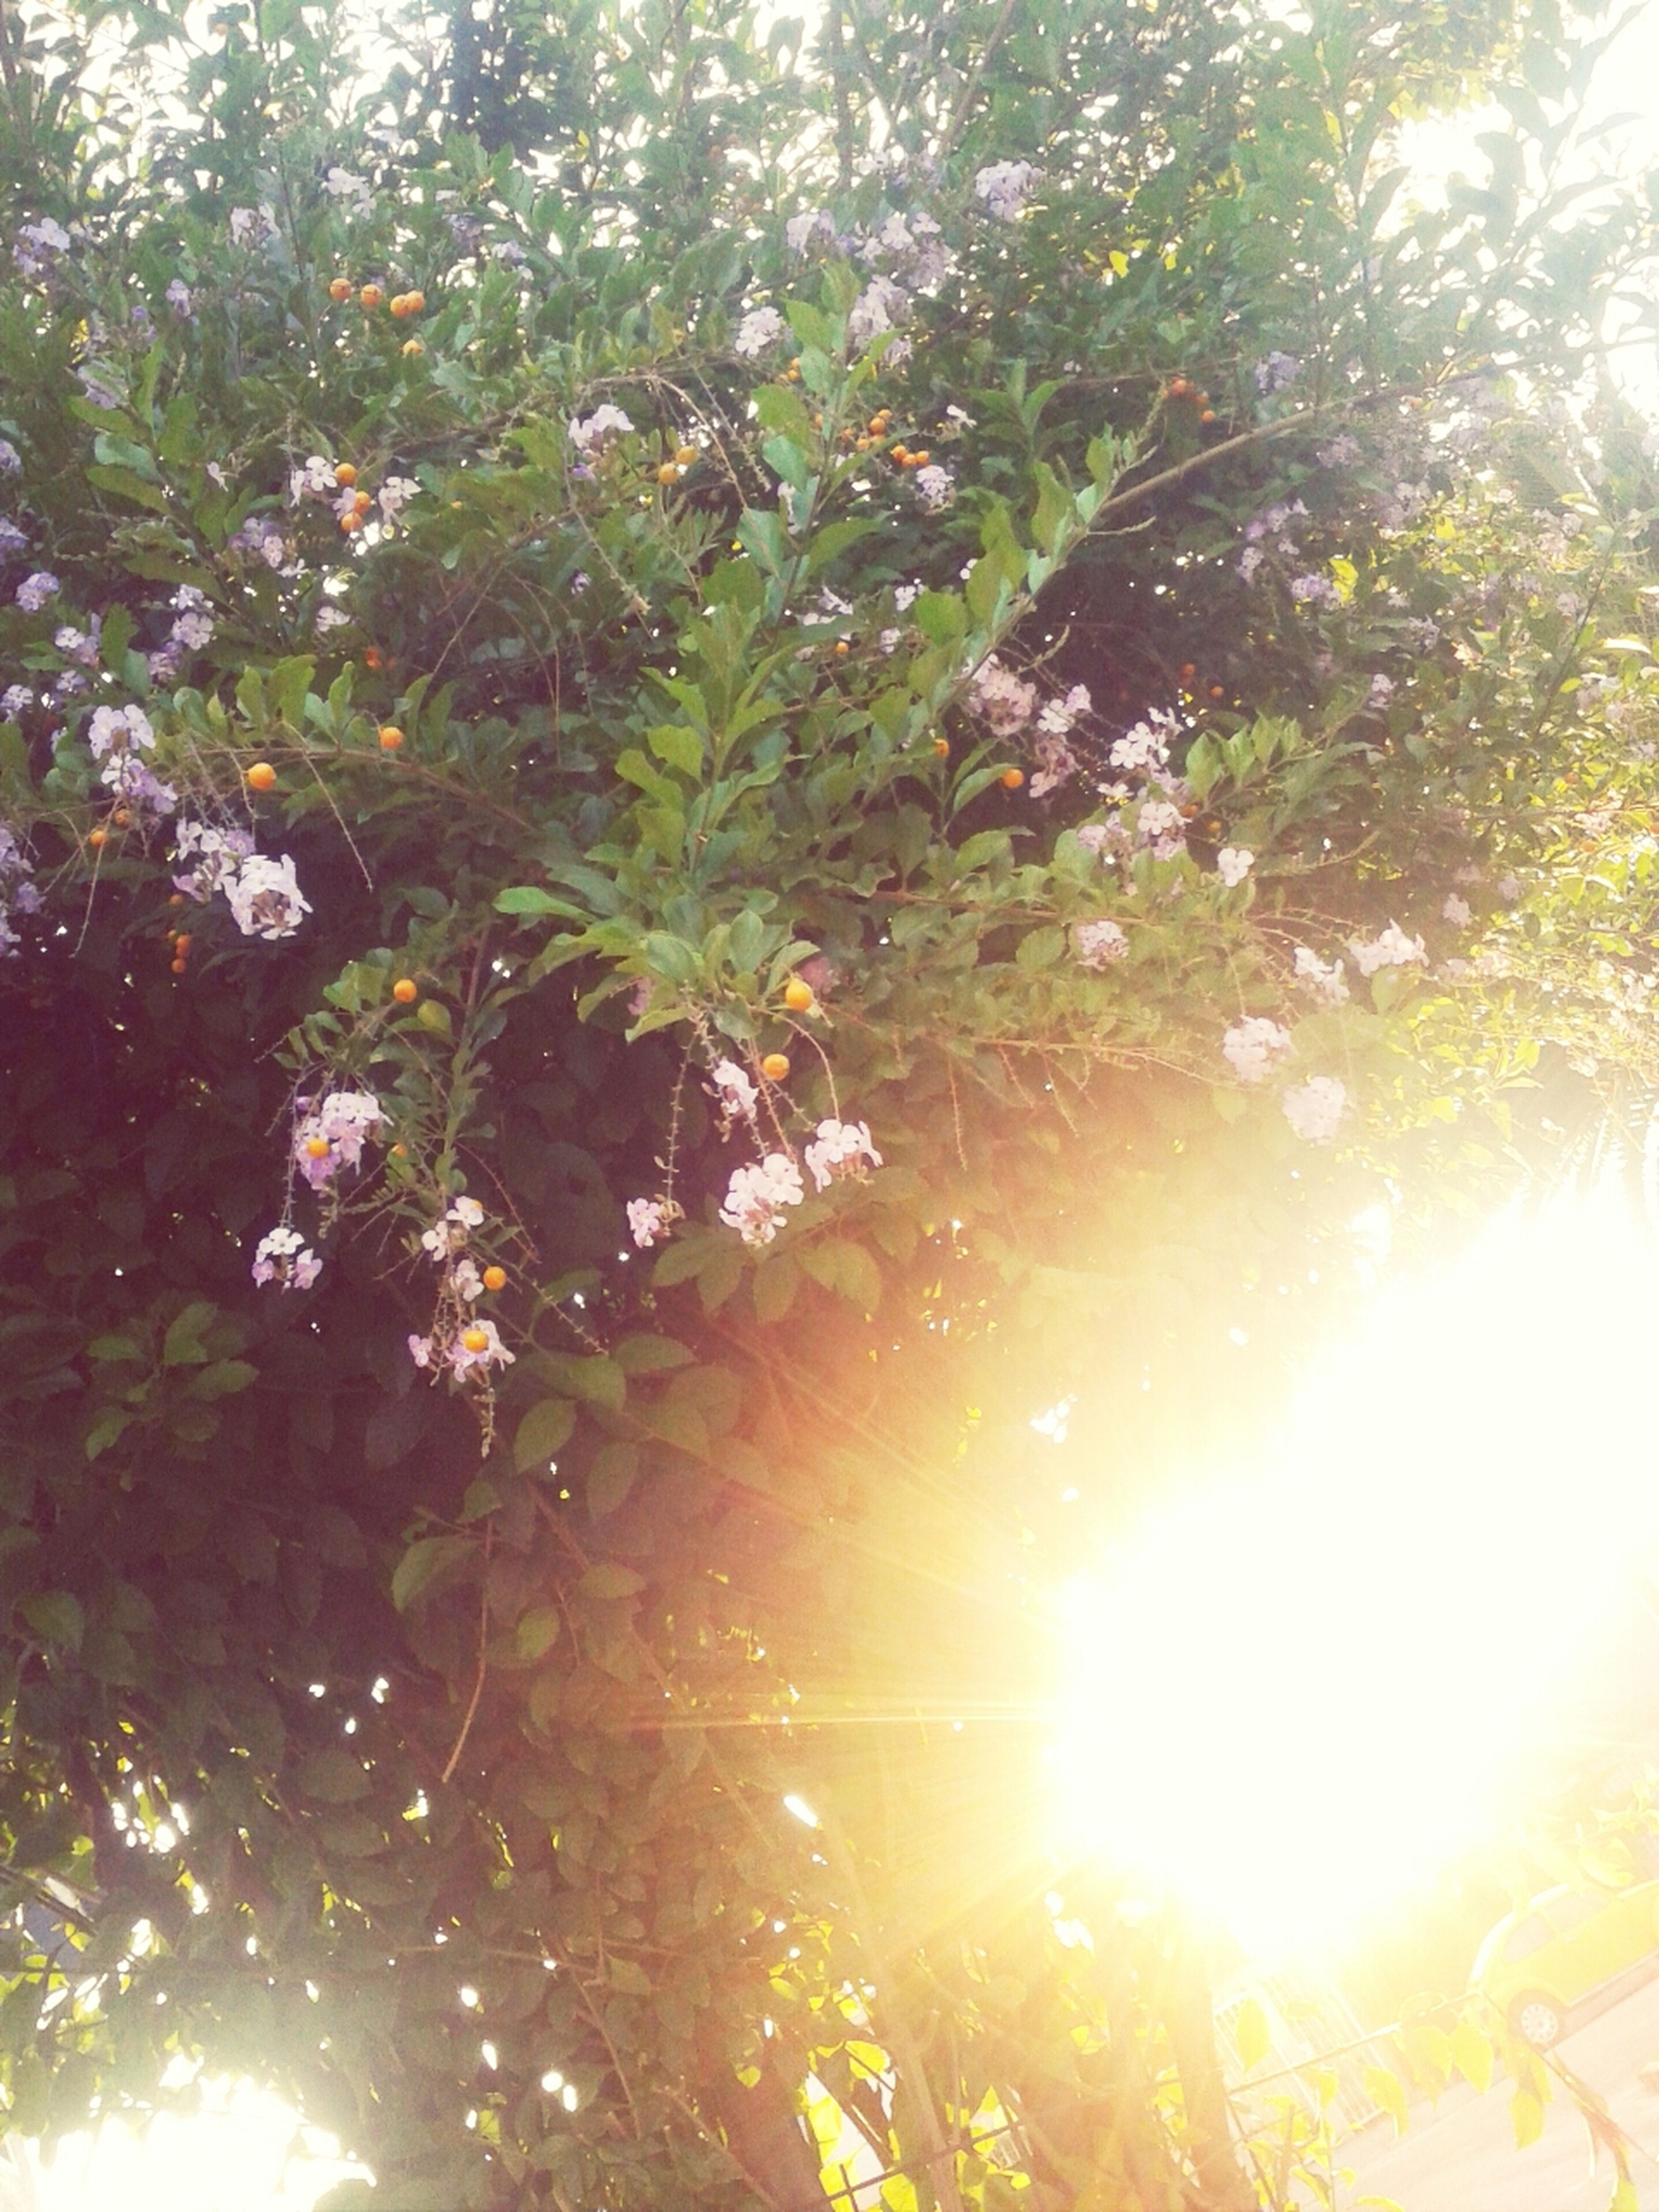 sun, sunbeam, tree, sunlight, lens flare, growth, low angle view, bright, beauty in nature, nature, branch, tranquility, sunny, back lit, leaf, scenics, tranquil scene, shiny, clear sky, outdoors